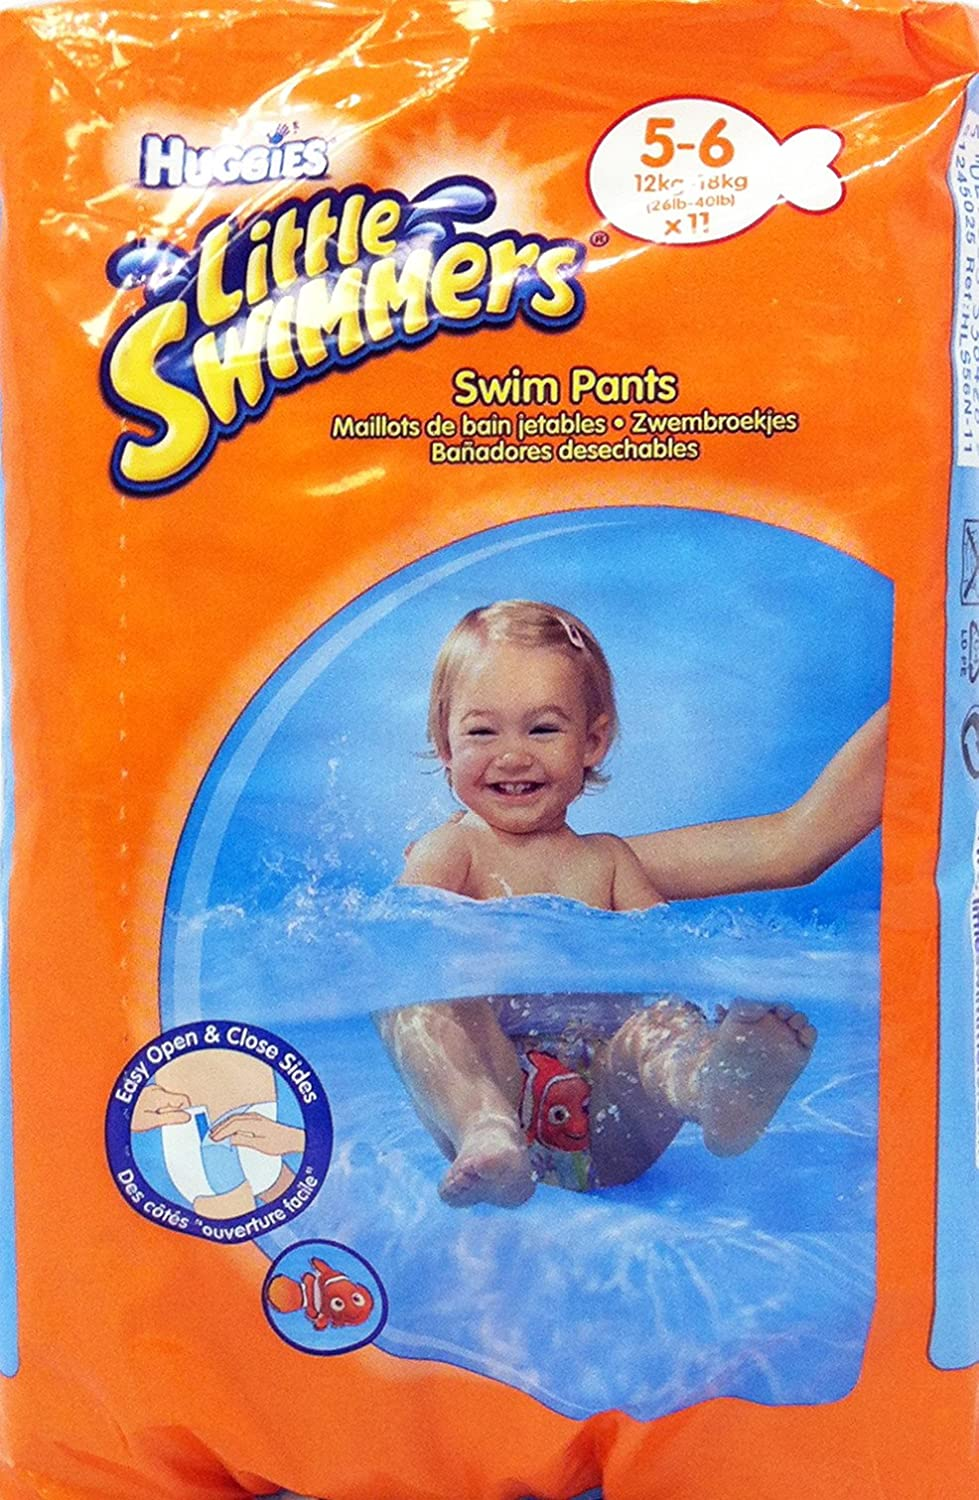 Huggies Swim Nappies Babies Little Swimmers Large 12 - 18 kg 11 Pieces 81024